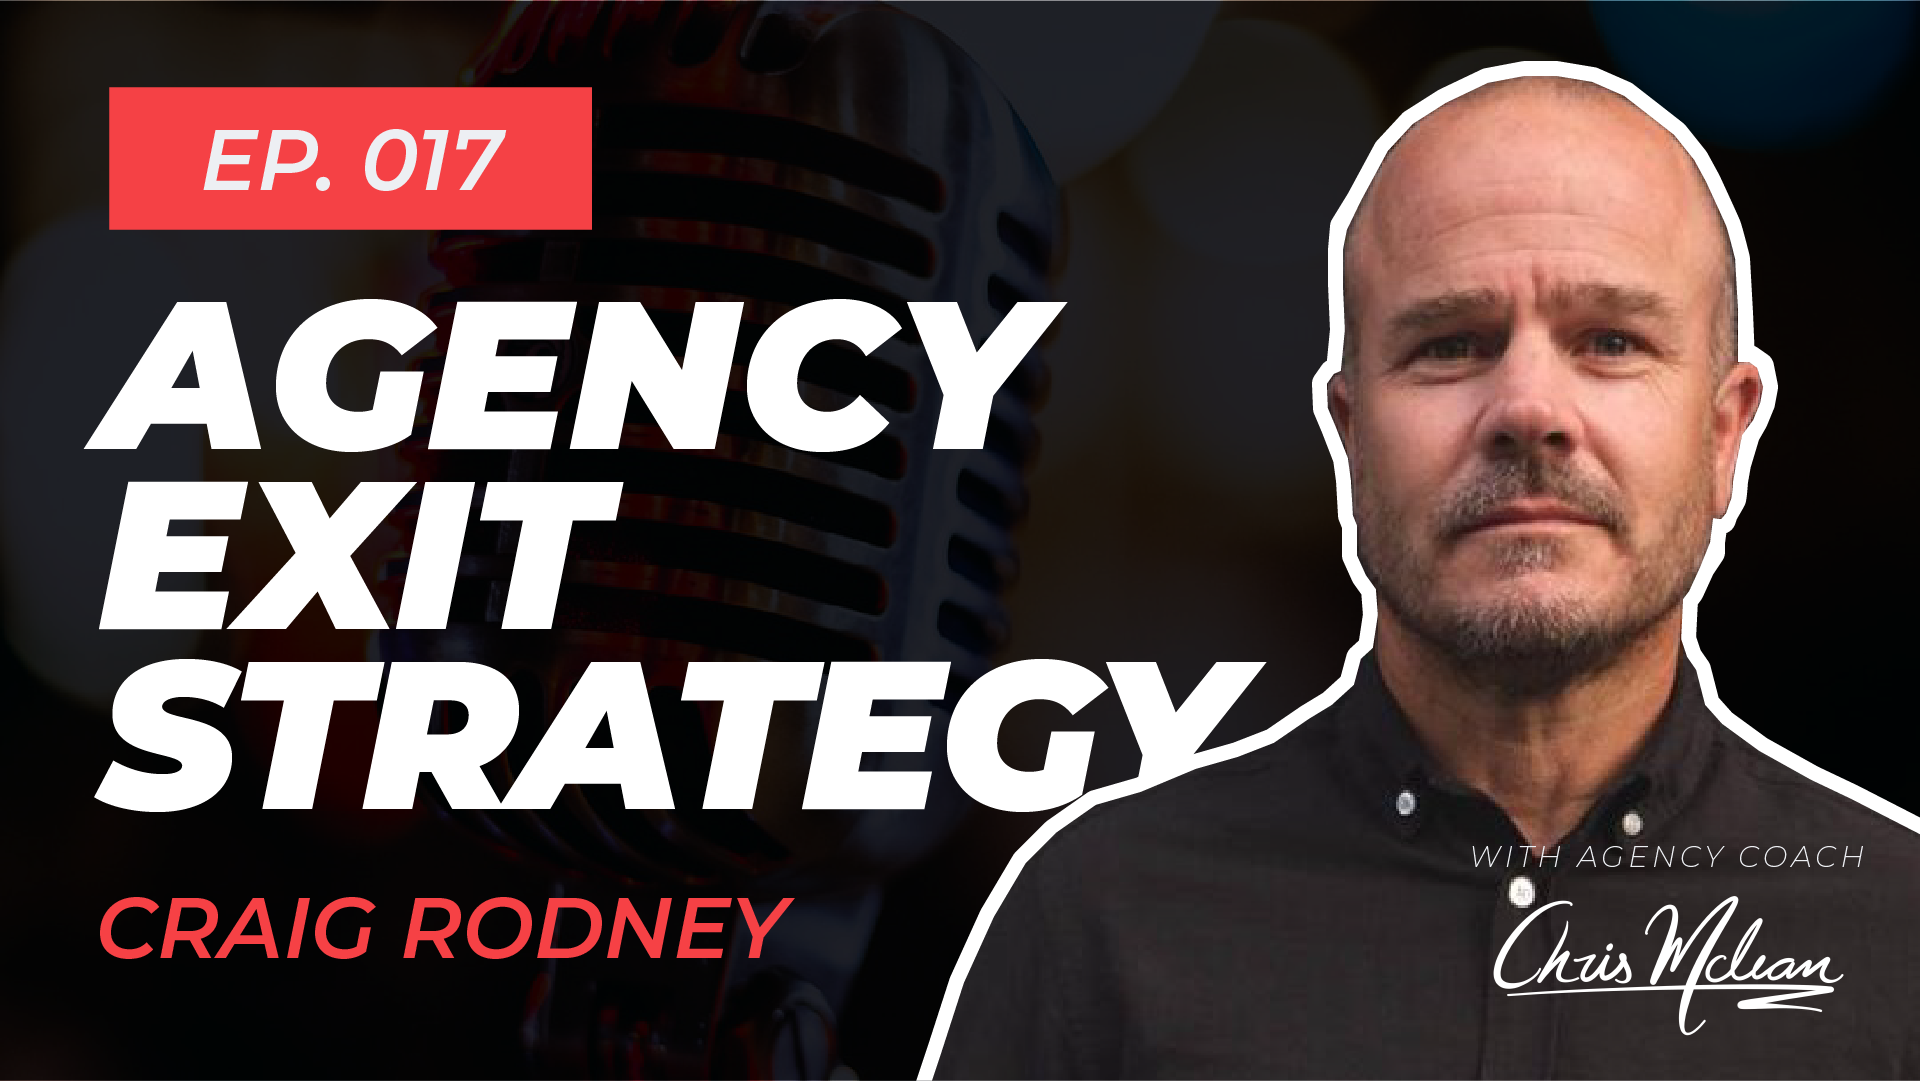 EP017 | Agency Exit Strategy with 'The Agency Coach' Craig Rodney